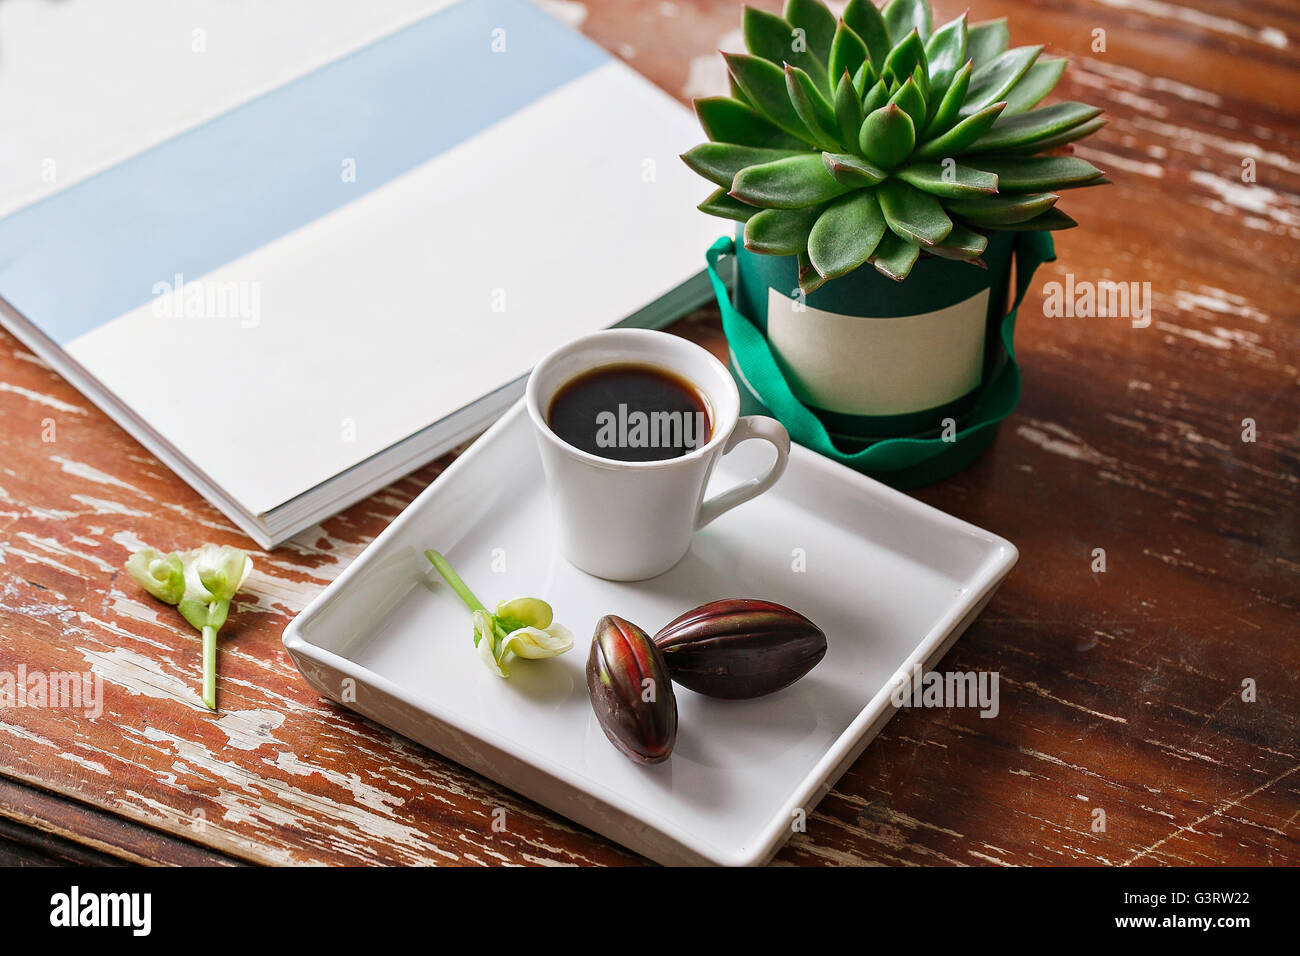 Cup of coffee and cactus on green box background. wooden table Stock Photo